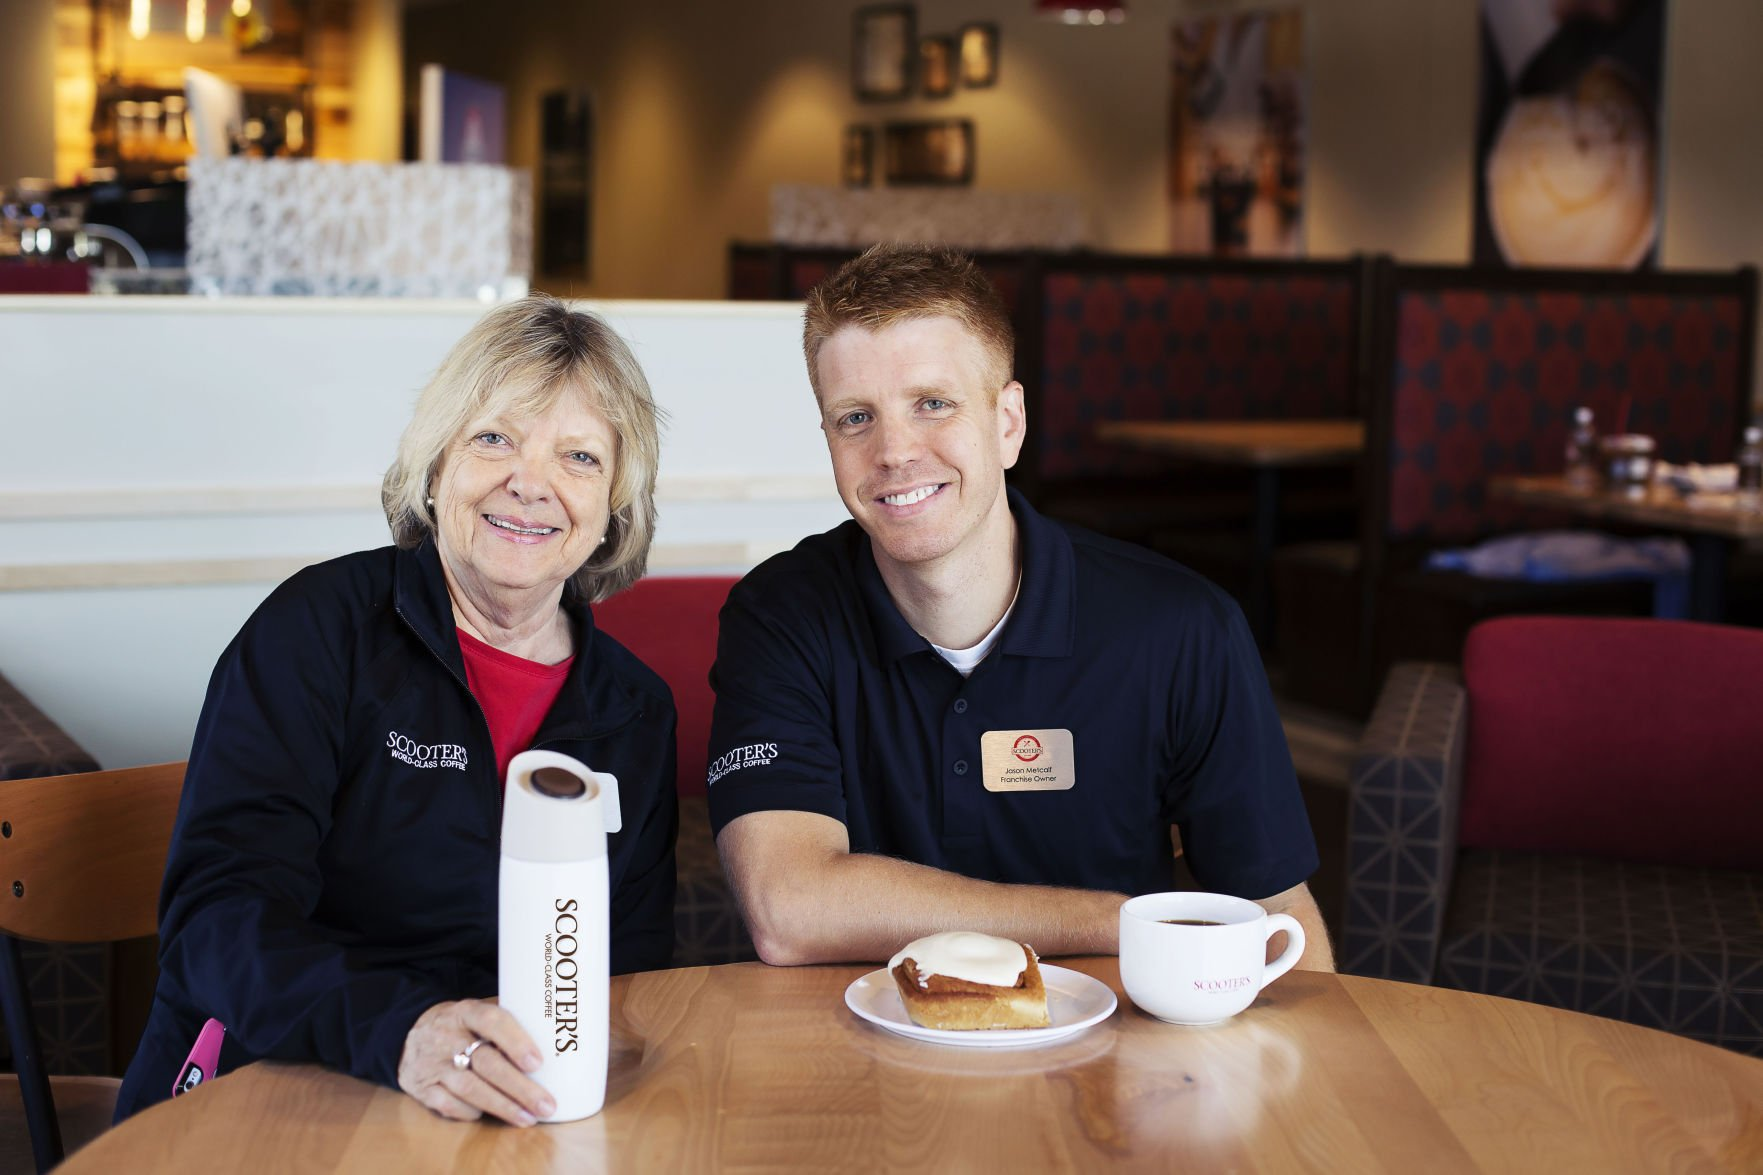 Nearly 15 Years And 14 Coffee Shops Later Mother Son Pair Still Strong Business Partners Local Business News Journalstar Com